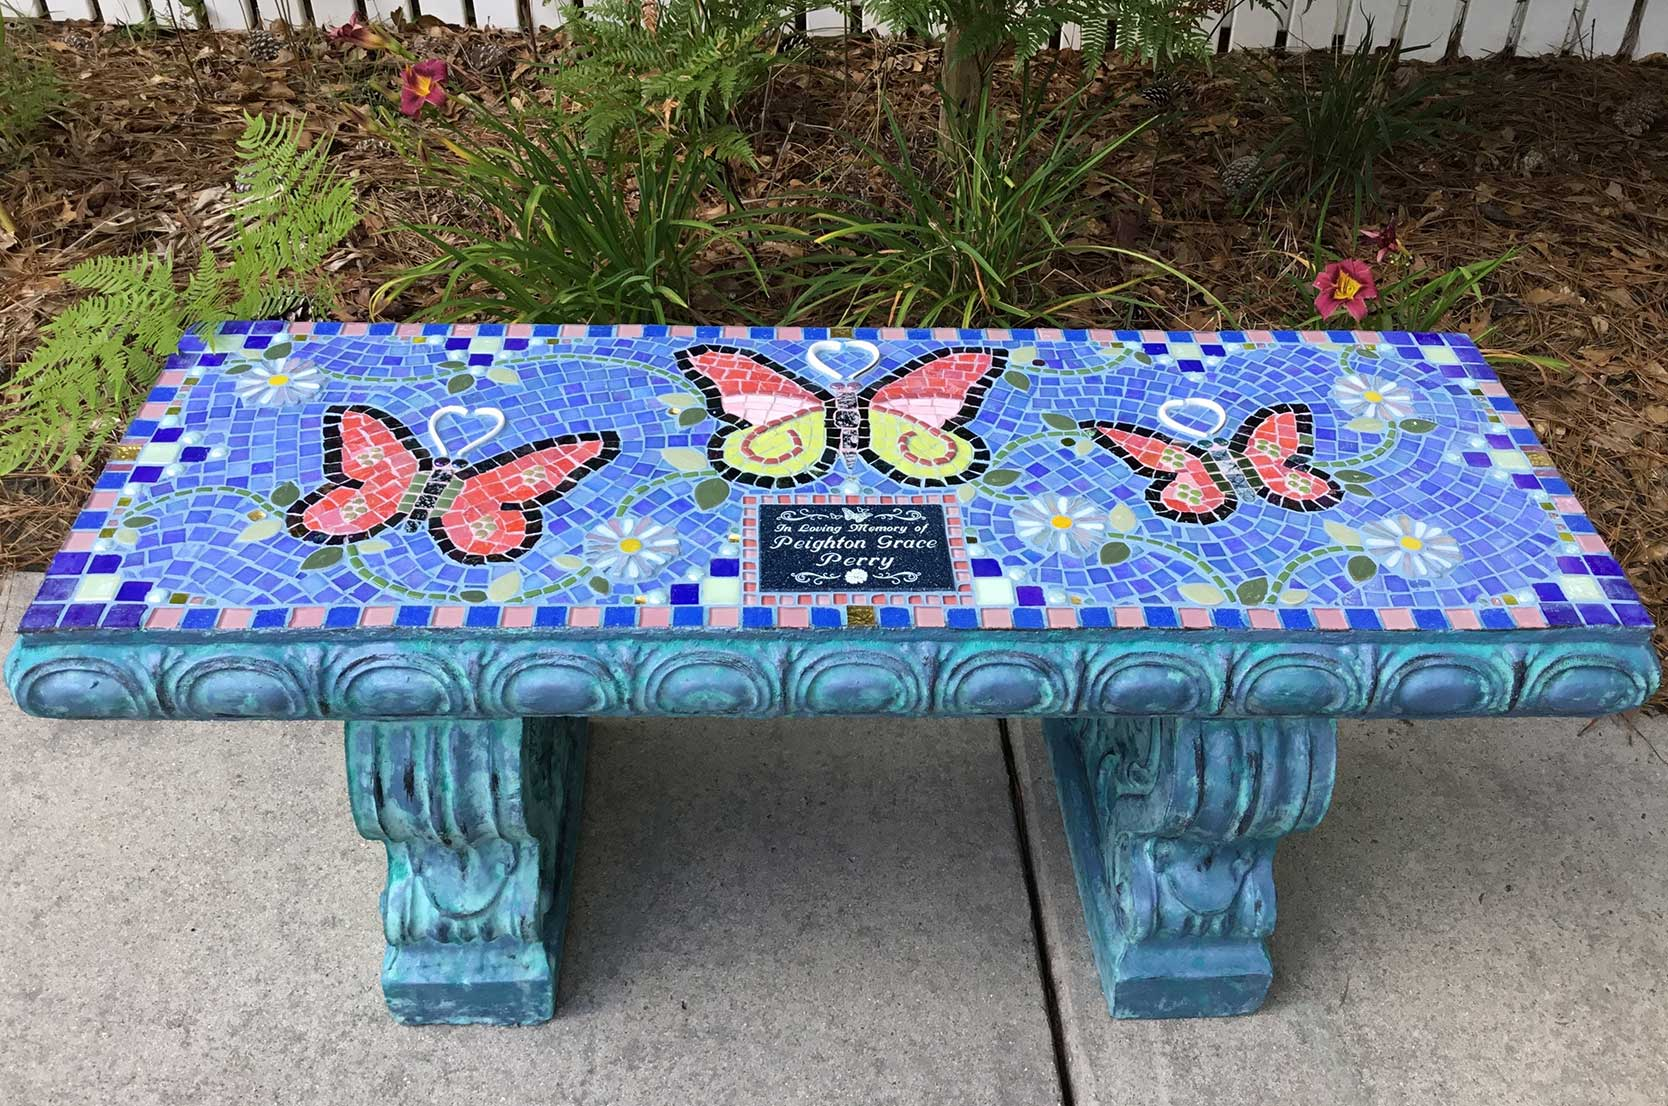 Mosaic Memorial Garden Bench 3 Butterflies by Water's End Studio Artist Linda Solby